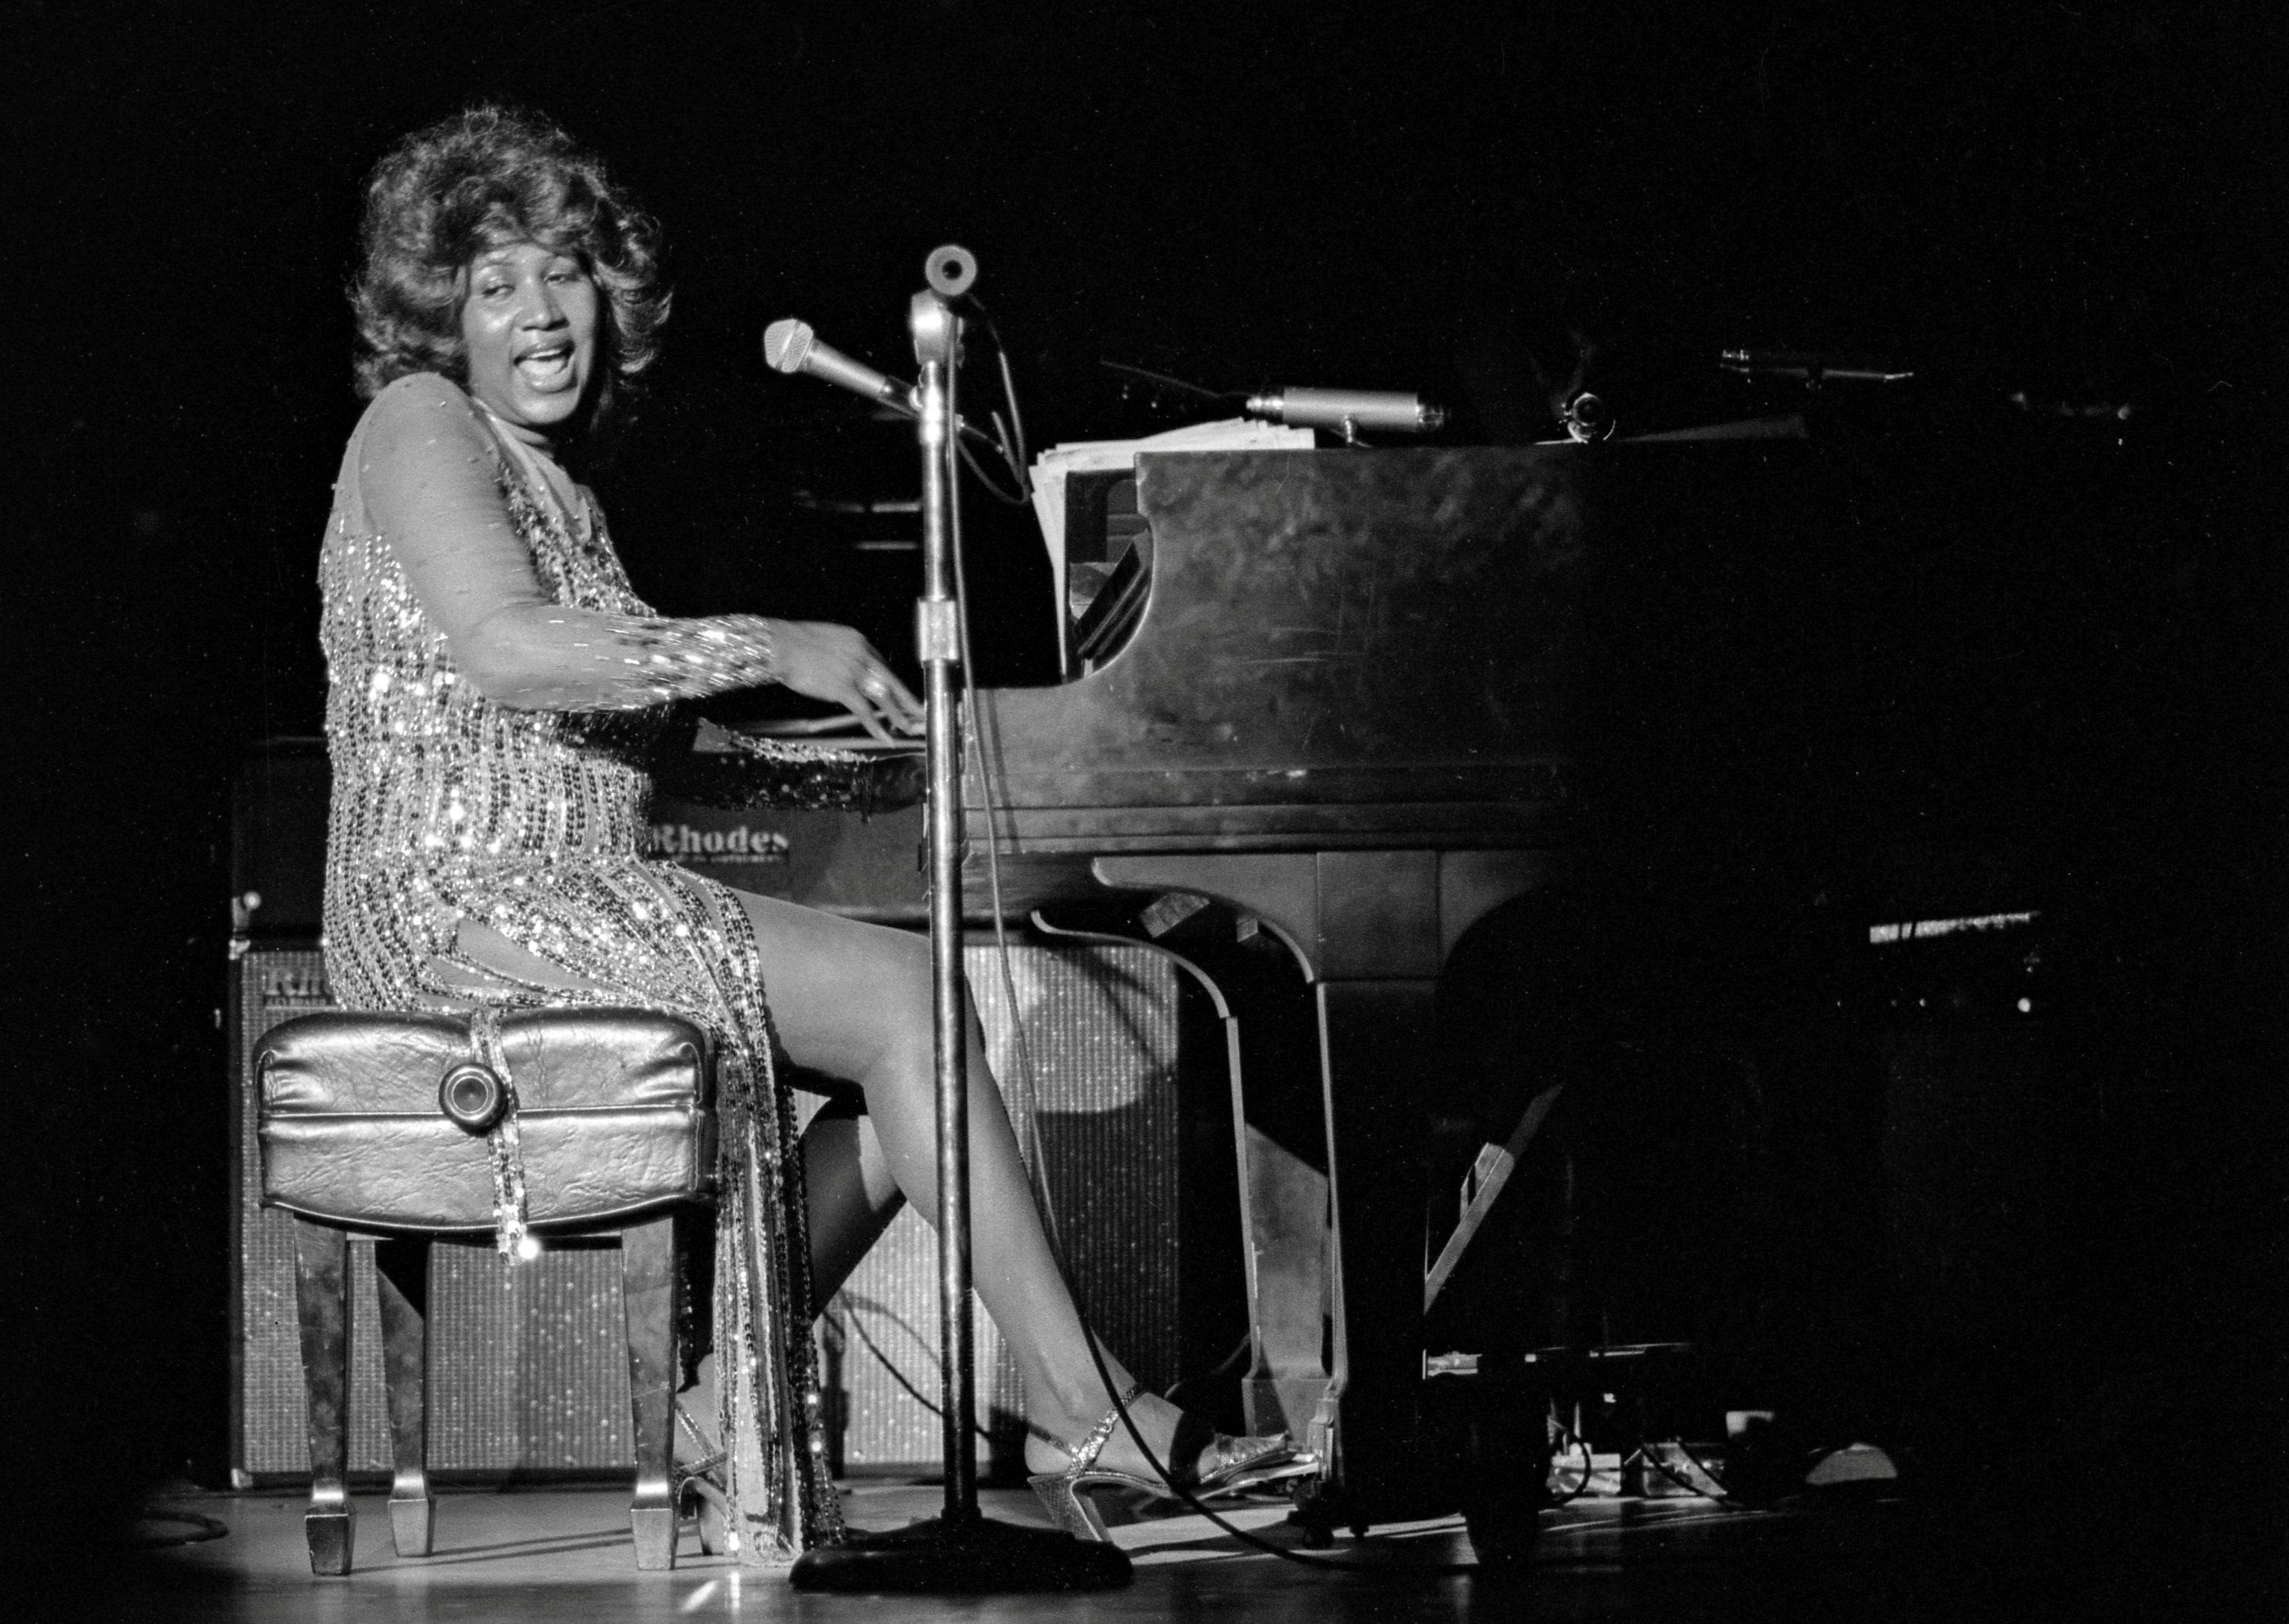 2018 08 16T163616Z 432945459 RC129A61C9E0 RTRMADP 3 PEOPLE ARETHA FRANKLIN